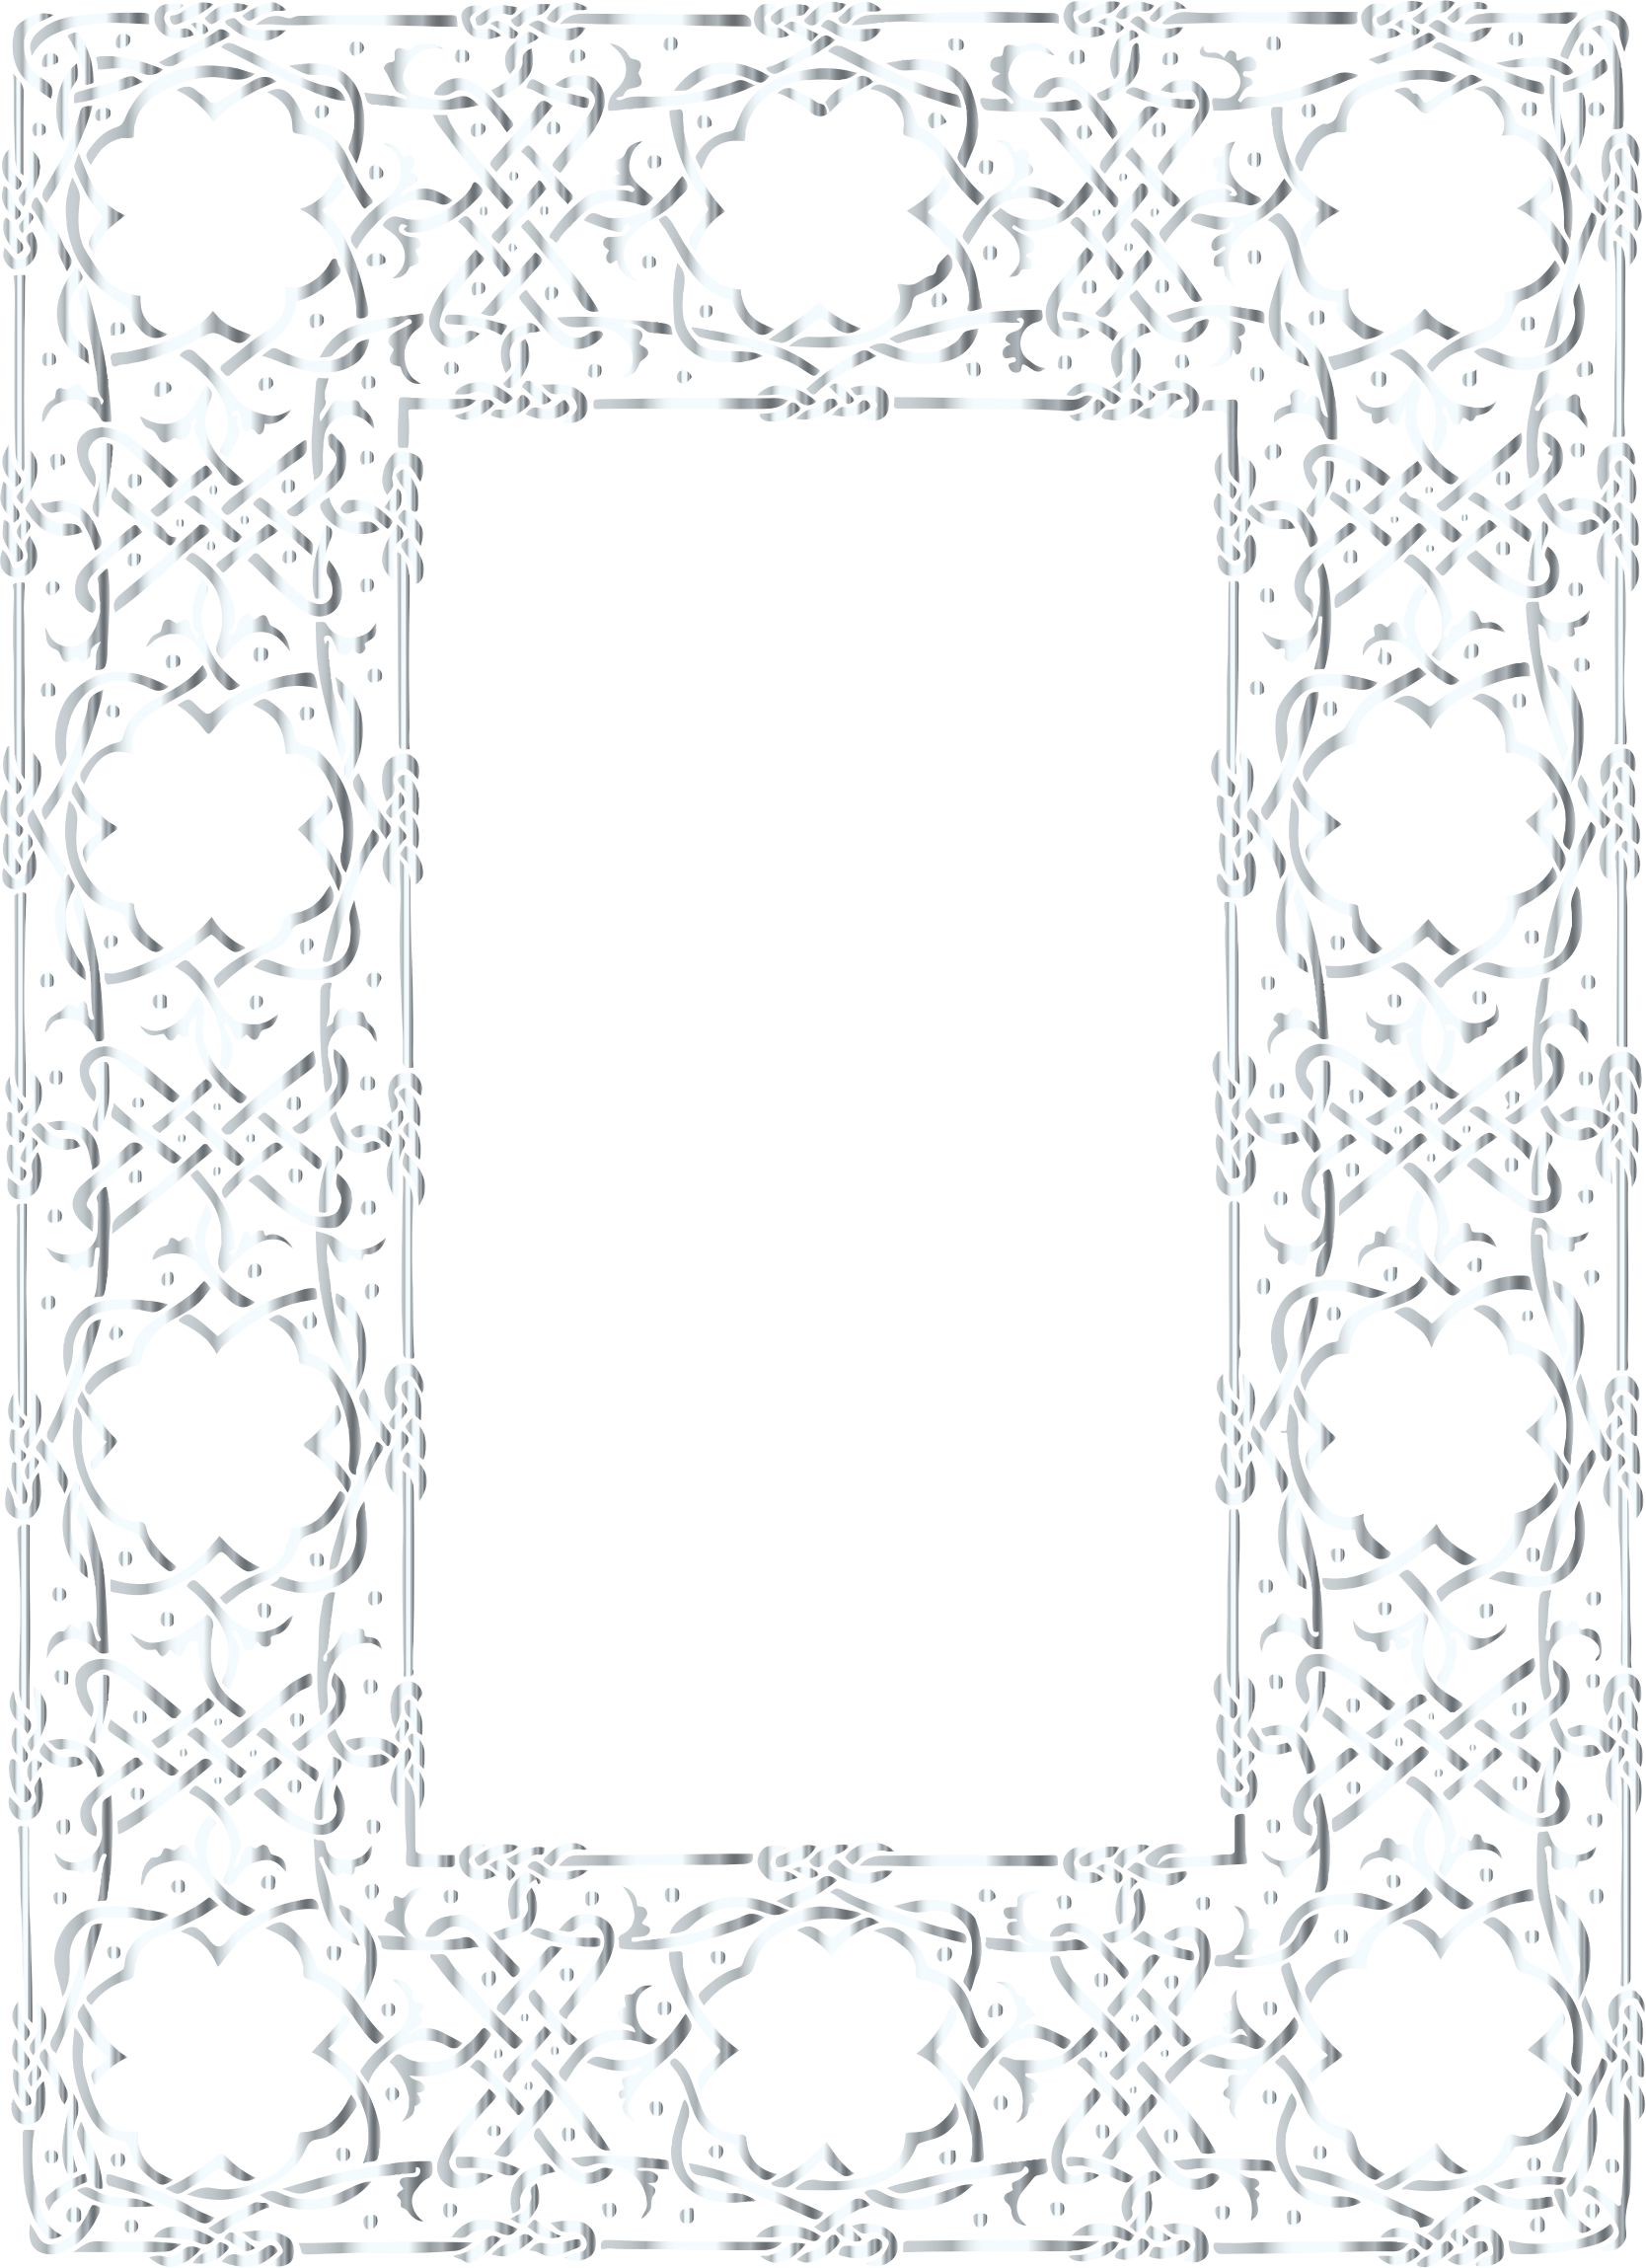 Silver Ornate Geometric Frame No Background by GDJ